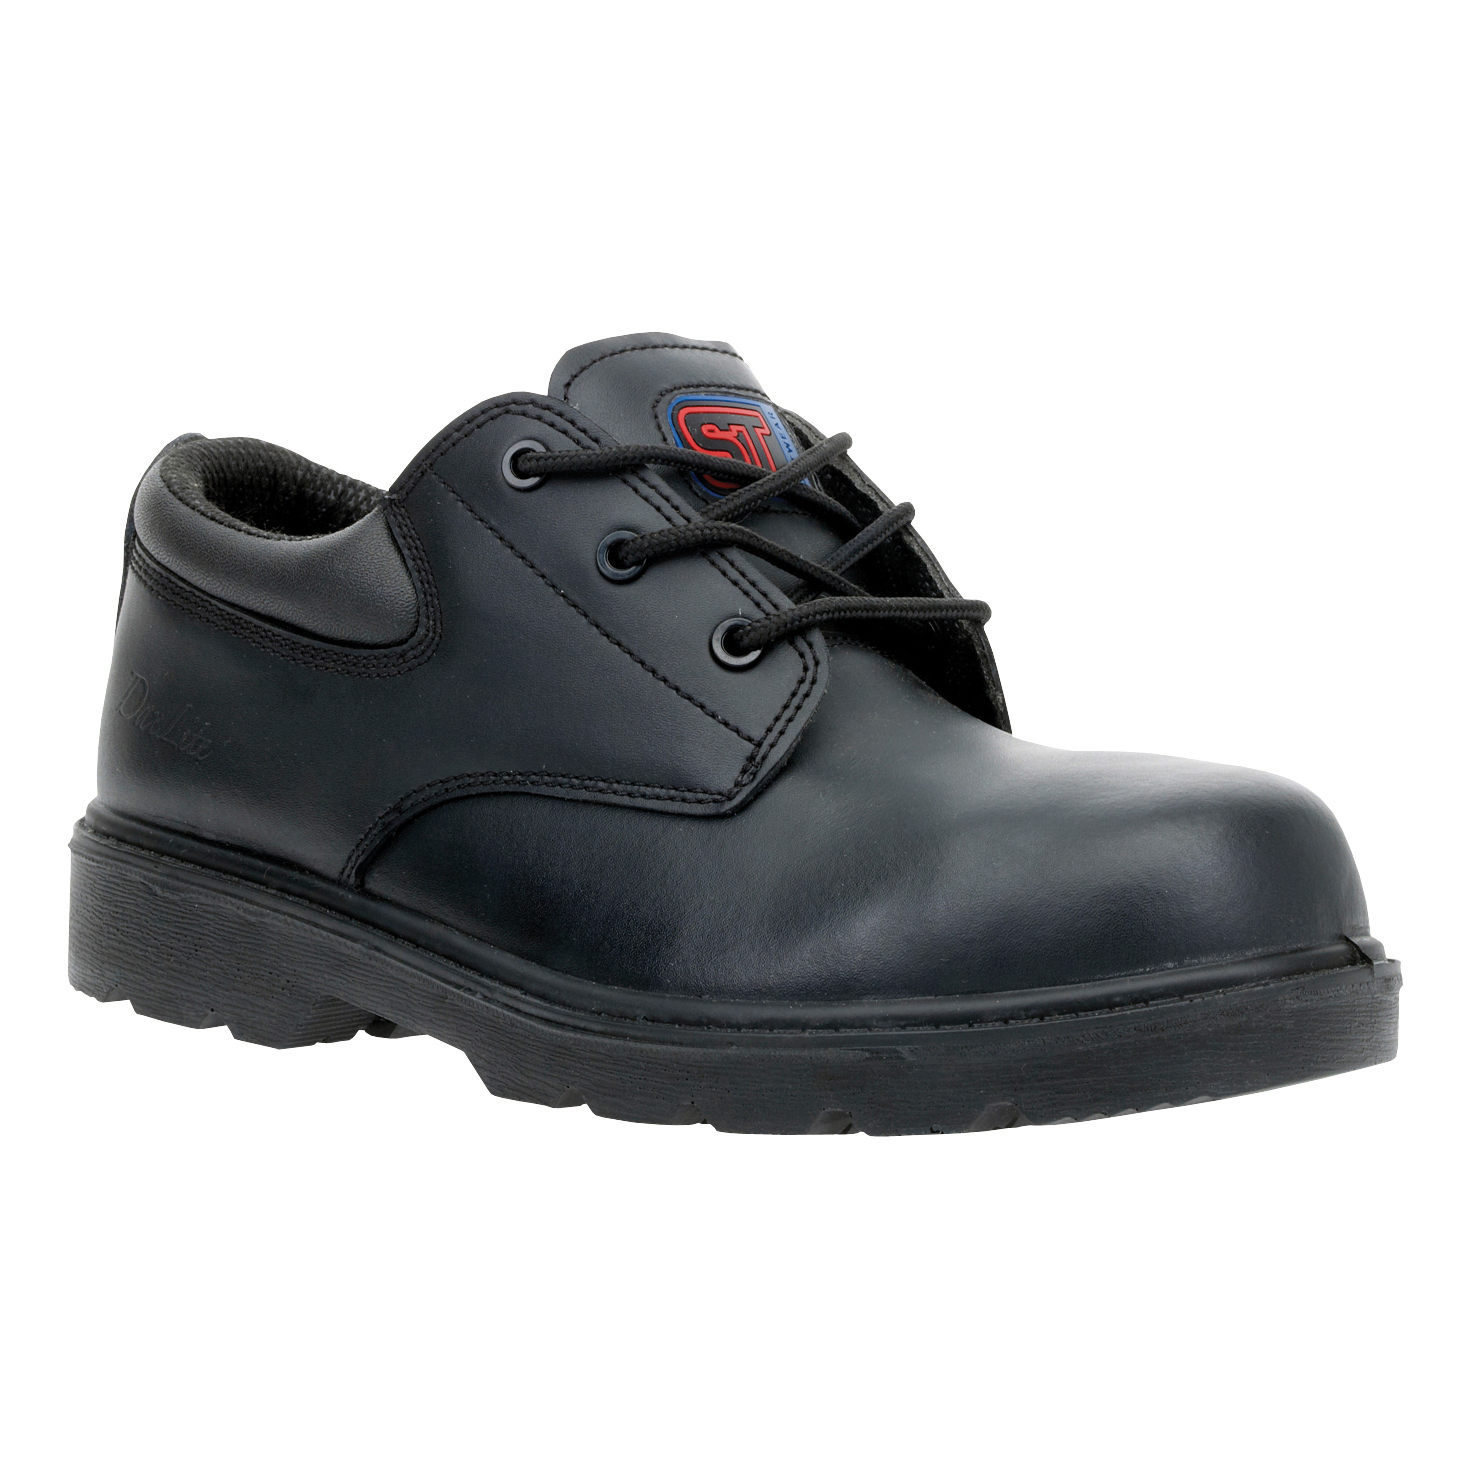 ST Dax Lite Air Comp' Shoe Metal Free Safety Toecap & Midsole Size 5 Blk Ref 90860 *Approx 3 Day L/Time*